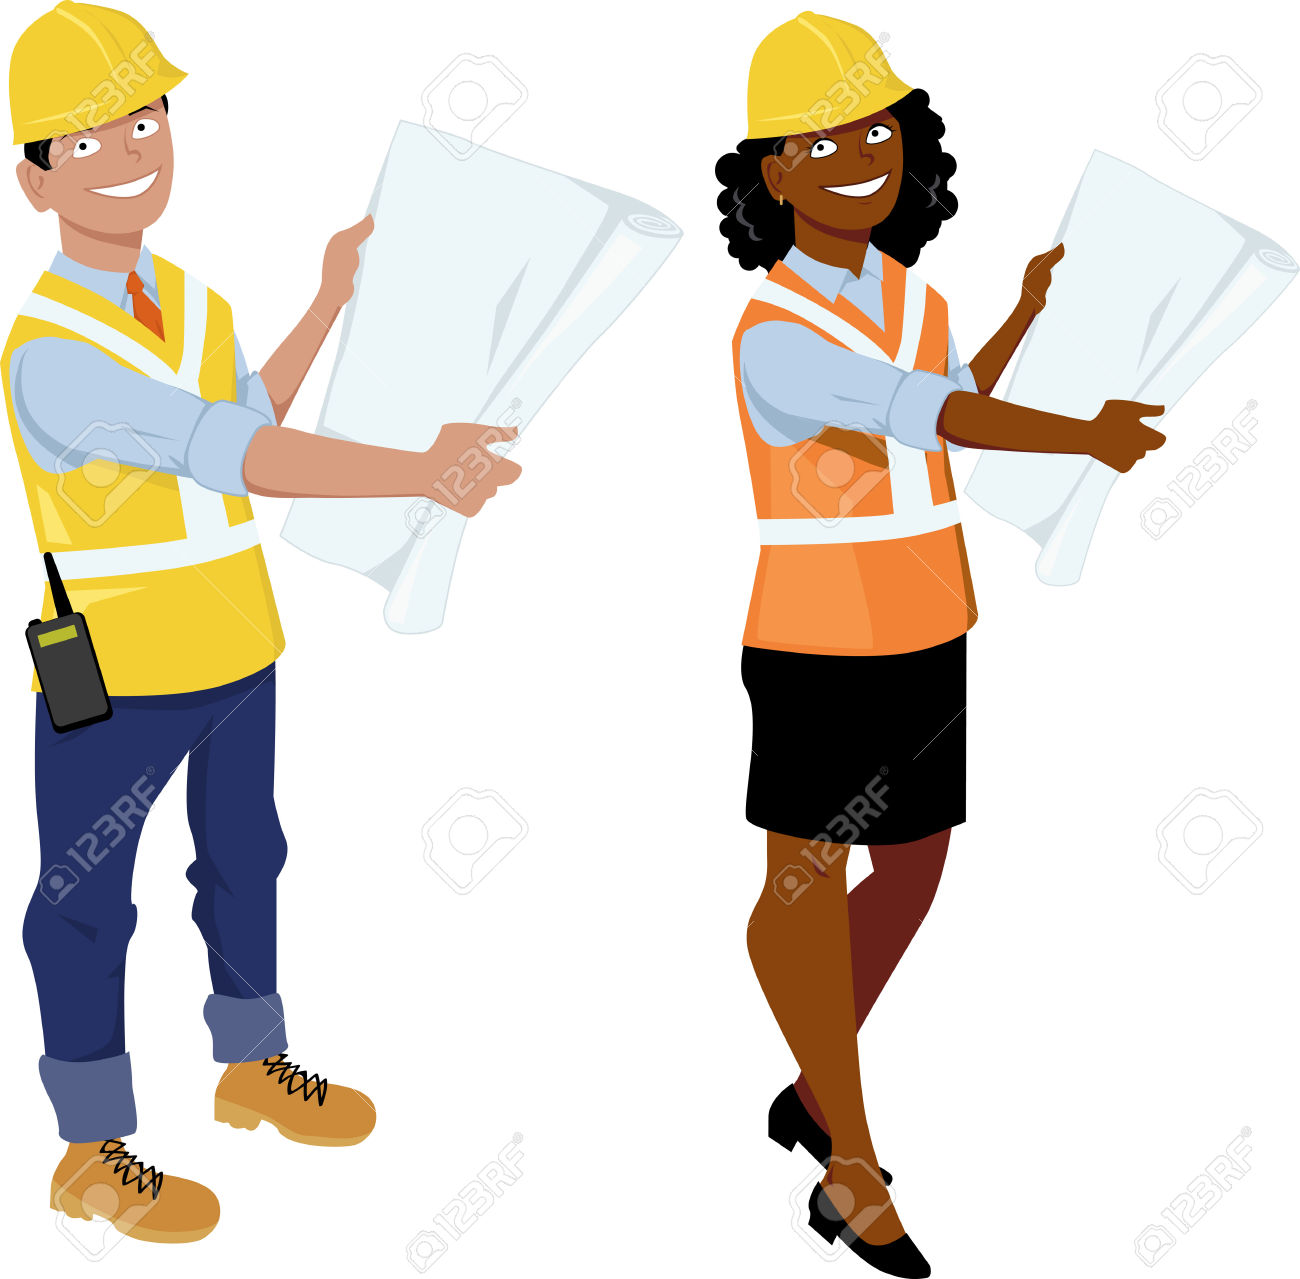 Architect clipart man. Engineer person explore pictures